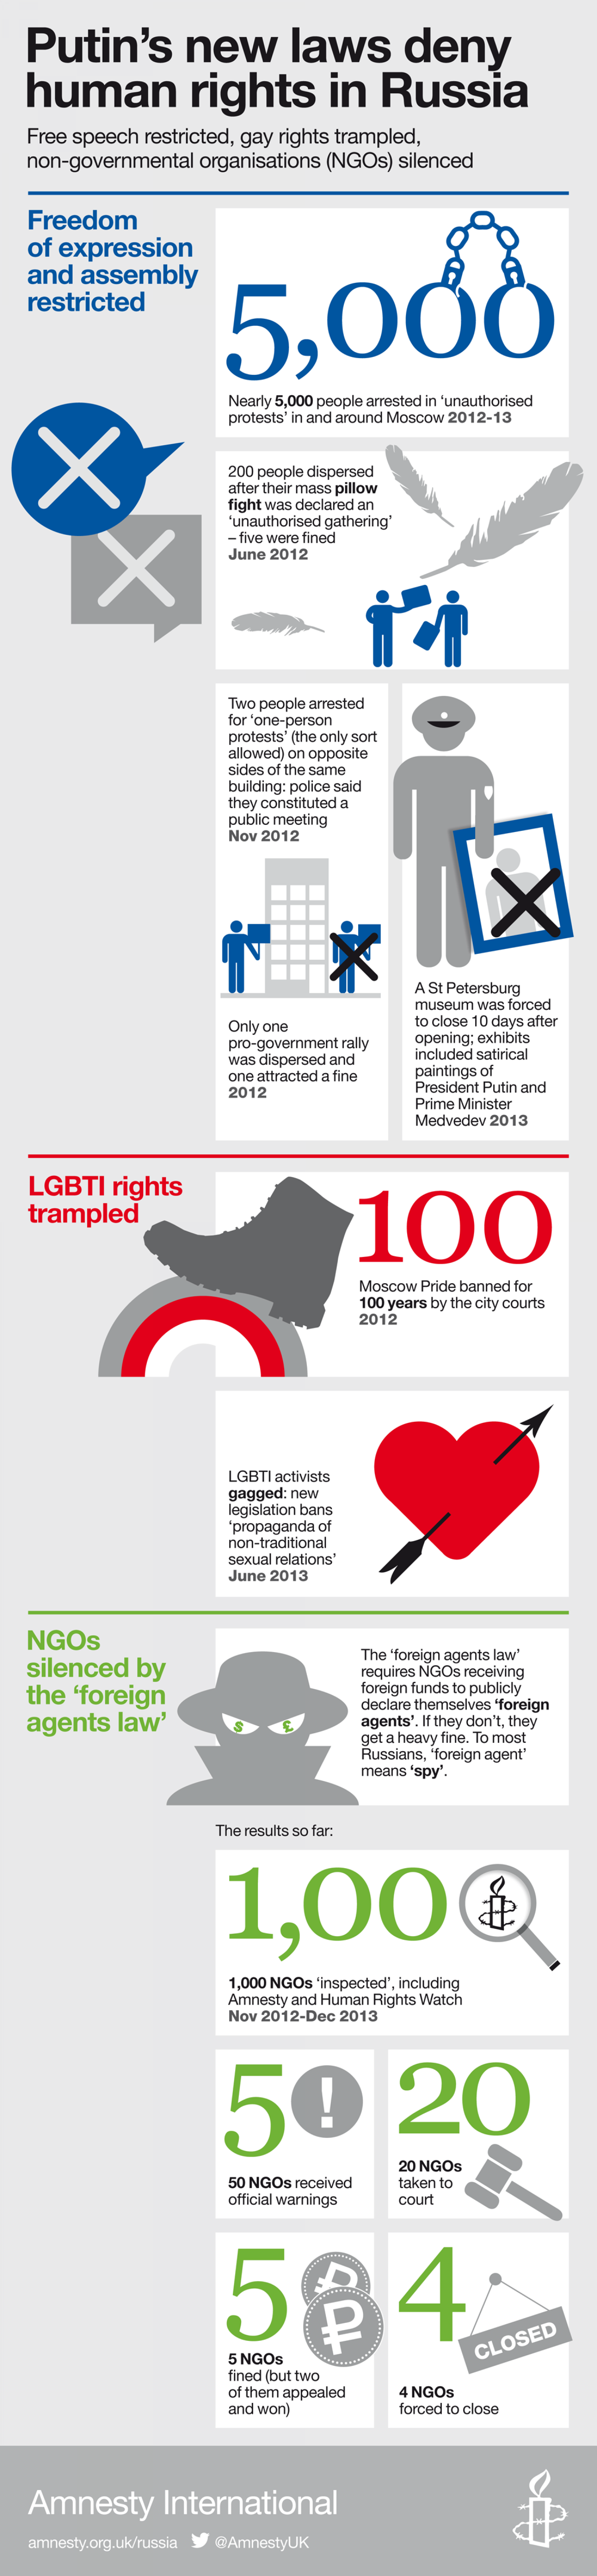 Putin's new laws trampling human rights in Russia Infographic